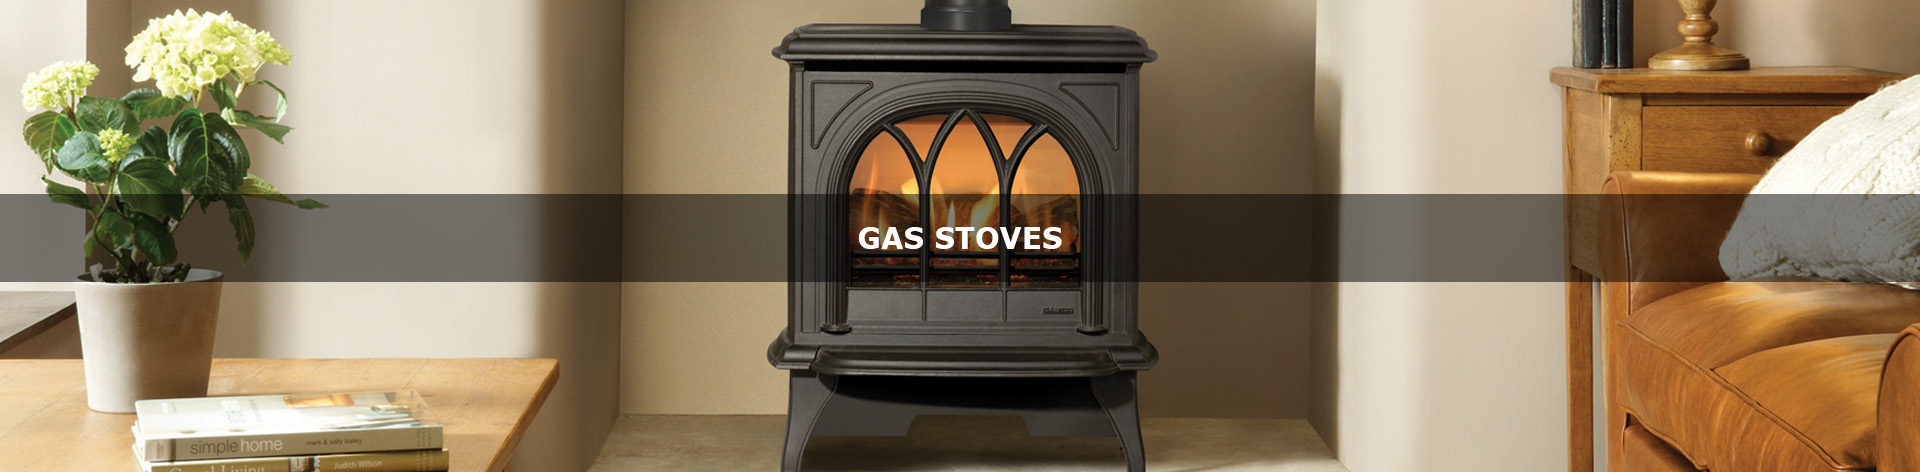 Gas Stoves Glasgow - Stove World Glasgow Scotland